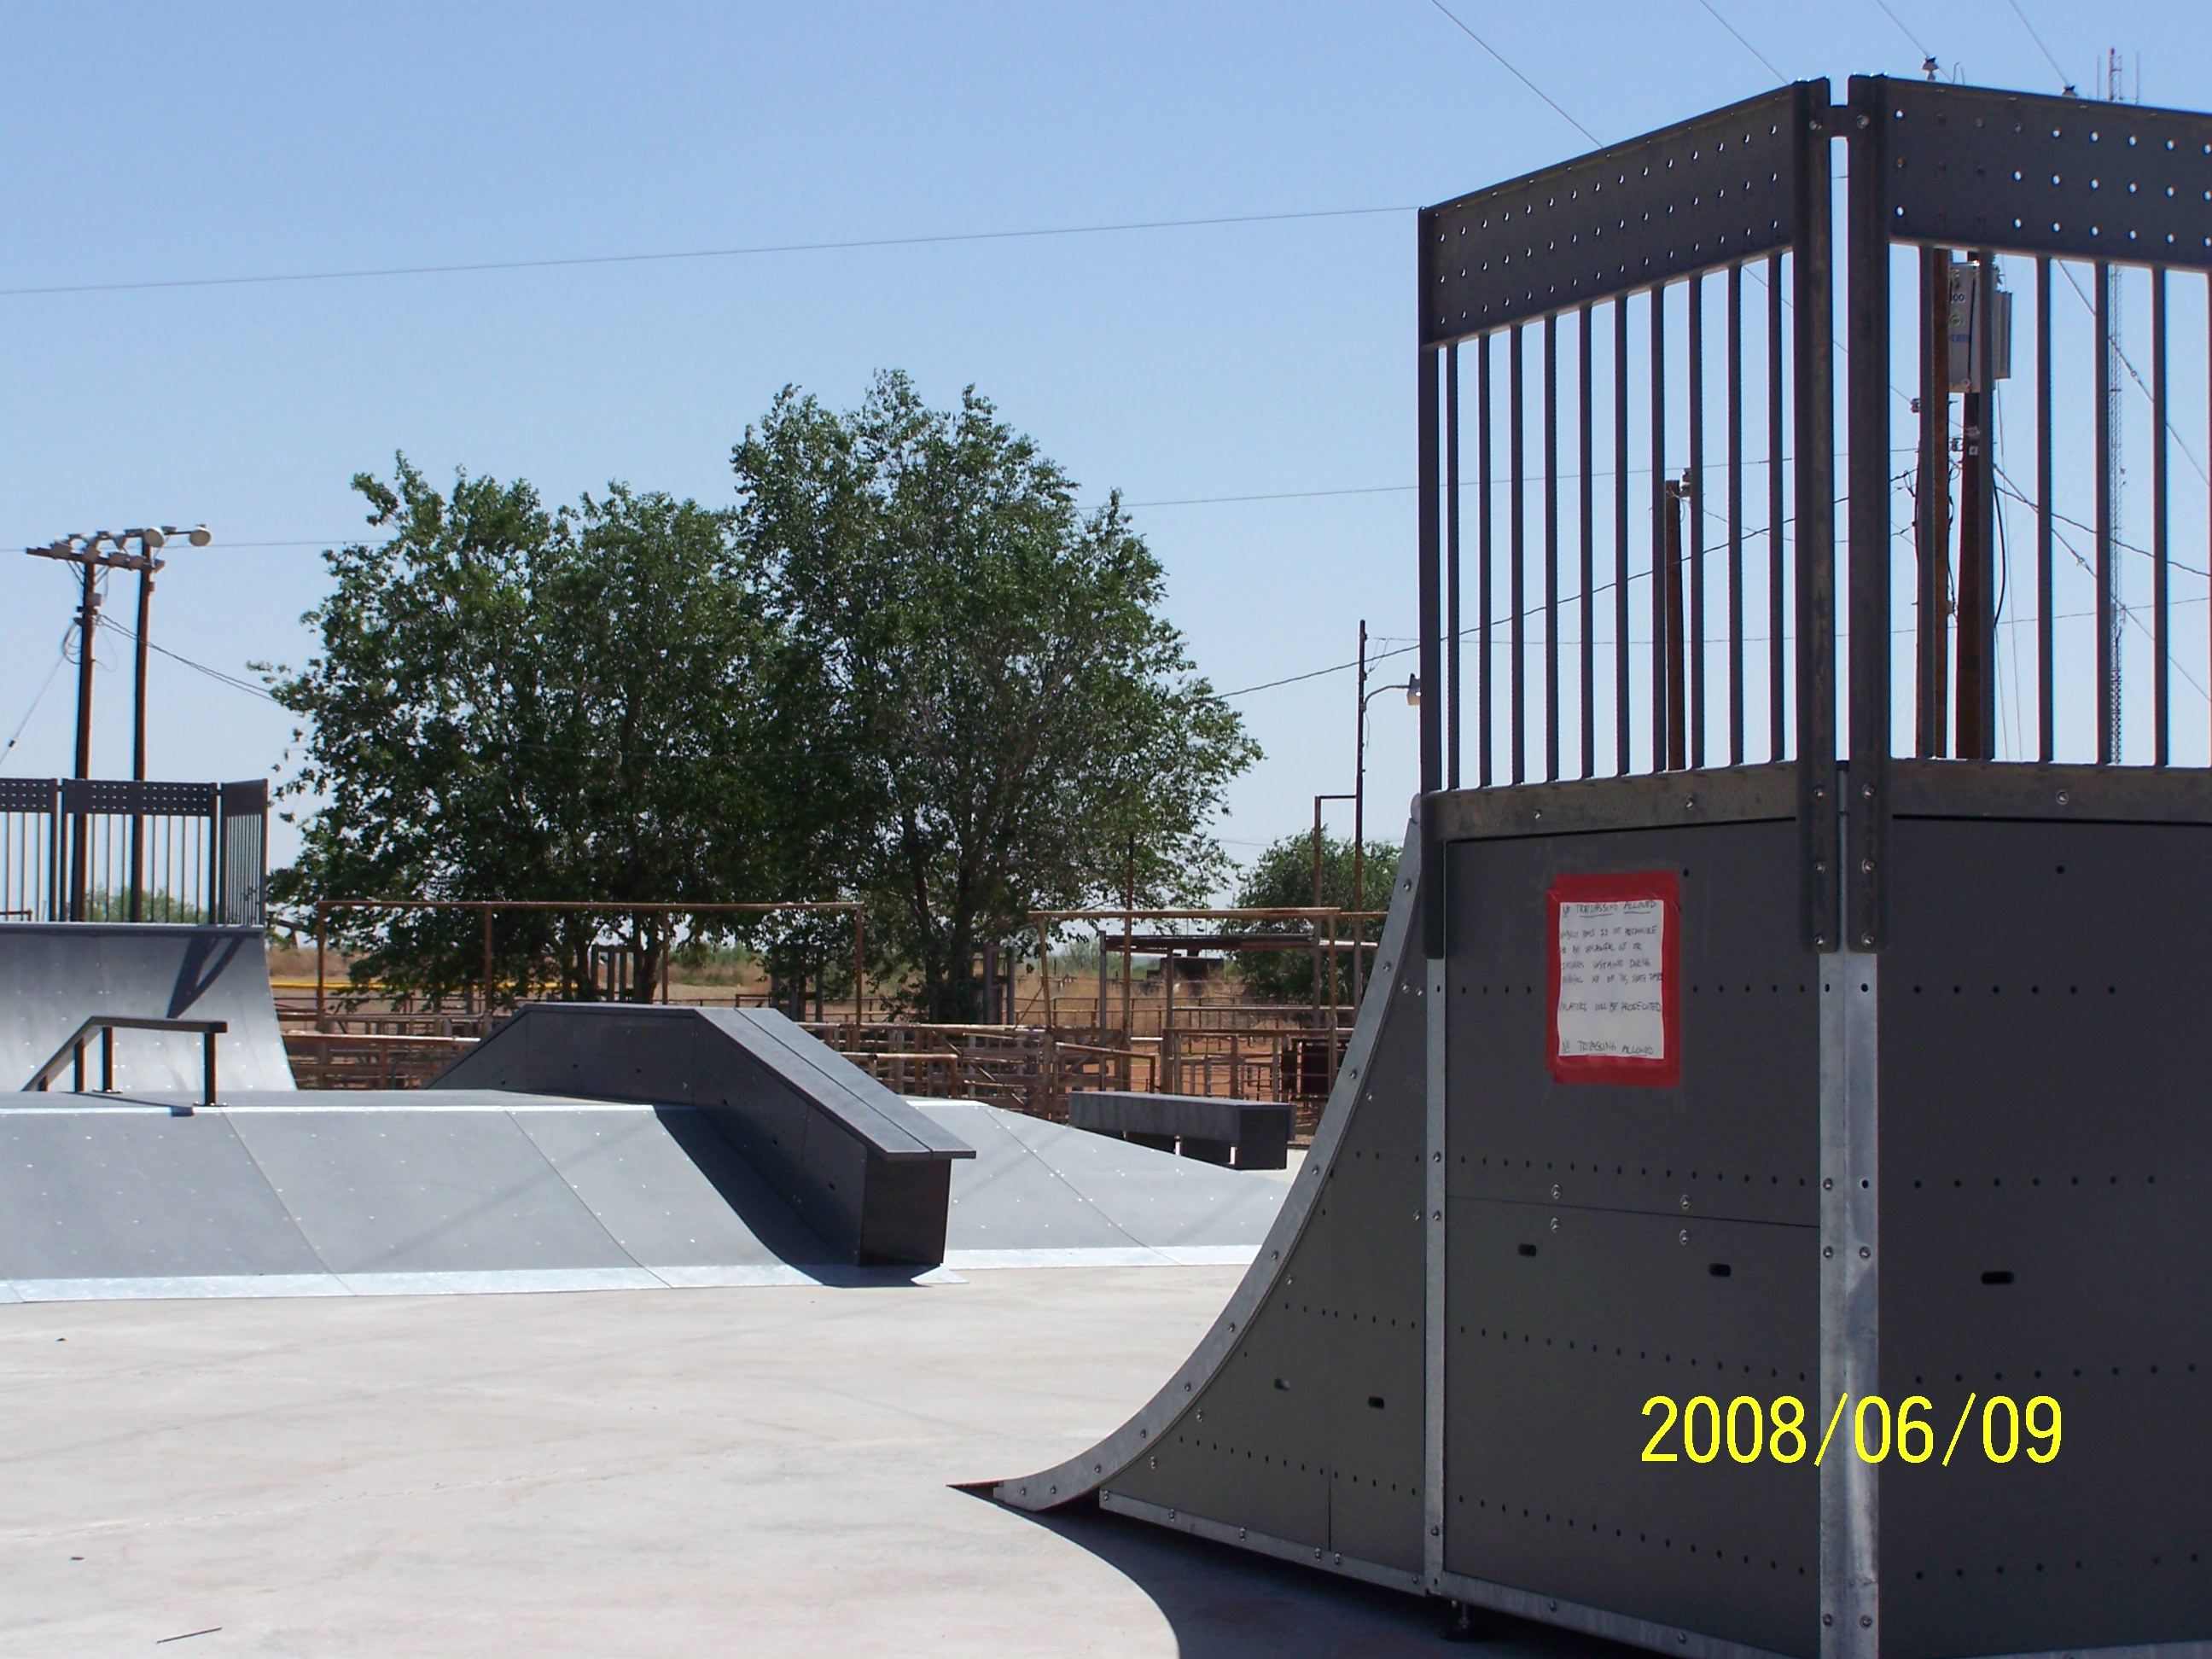 Skate Park Ramps and Facility